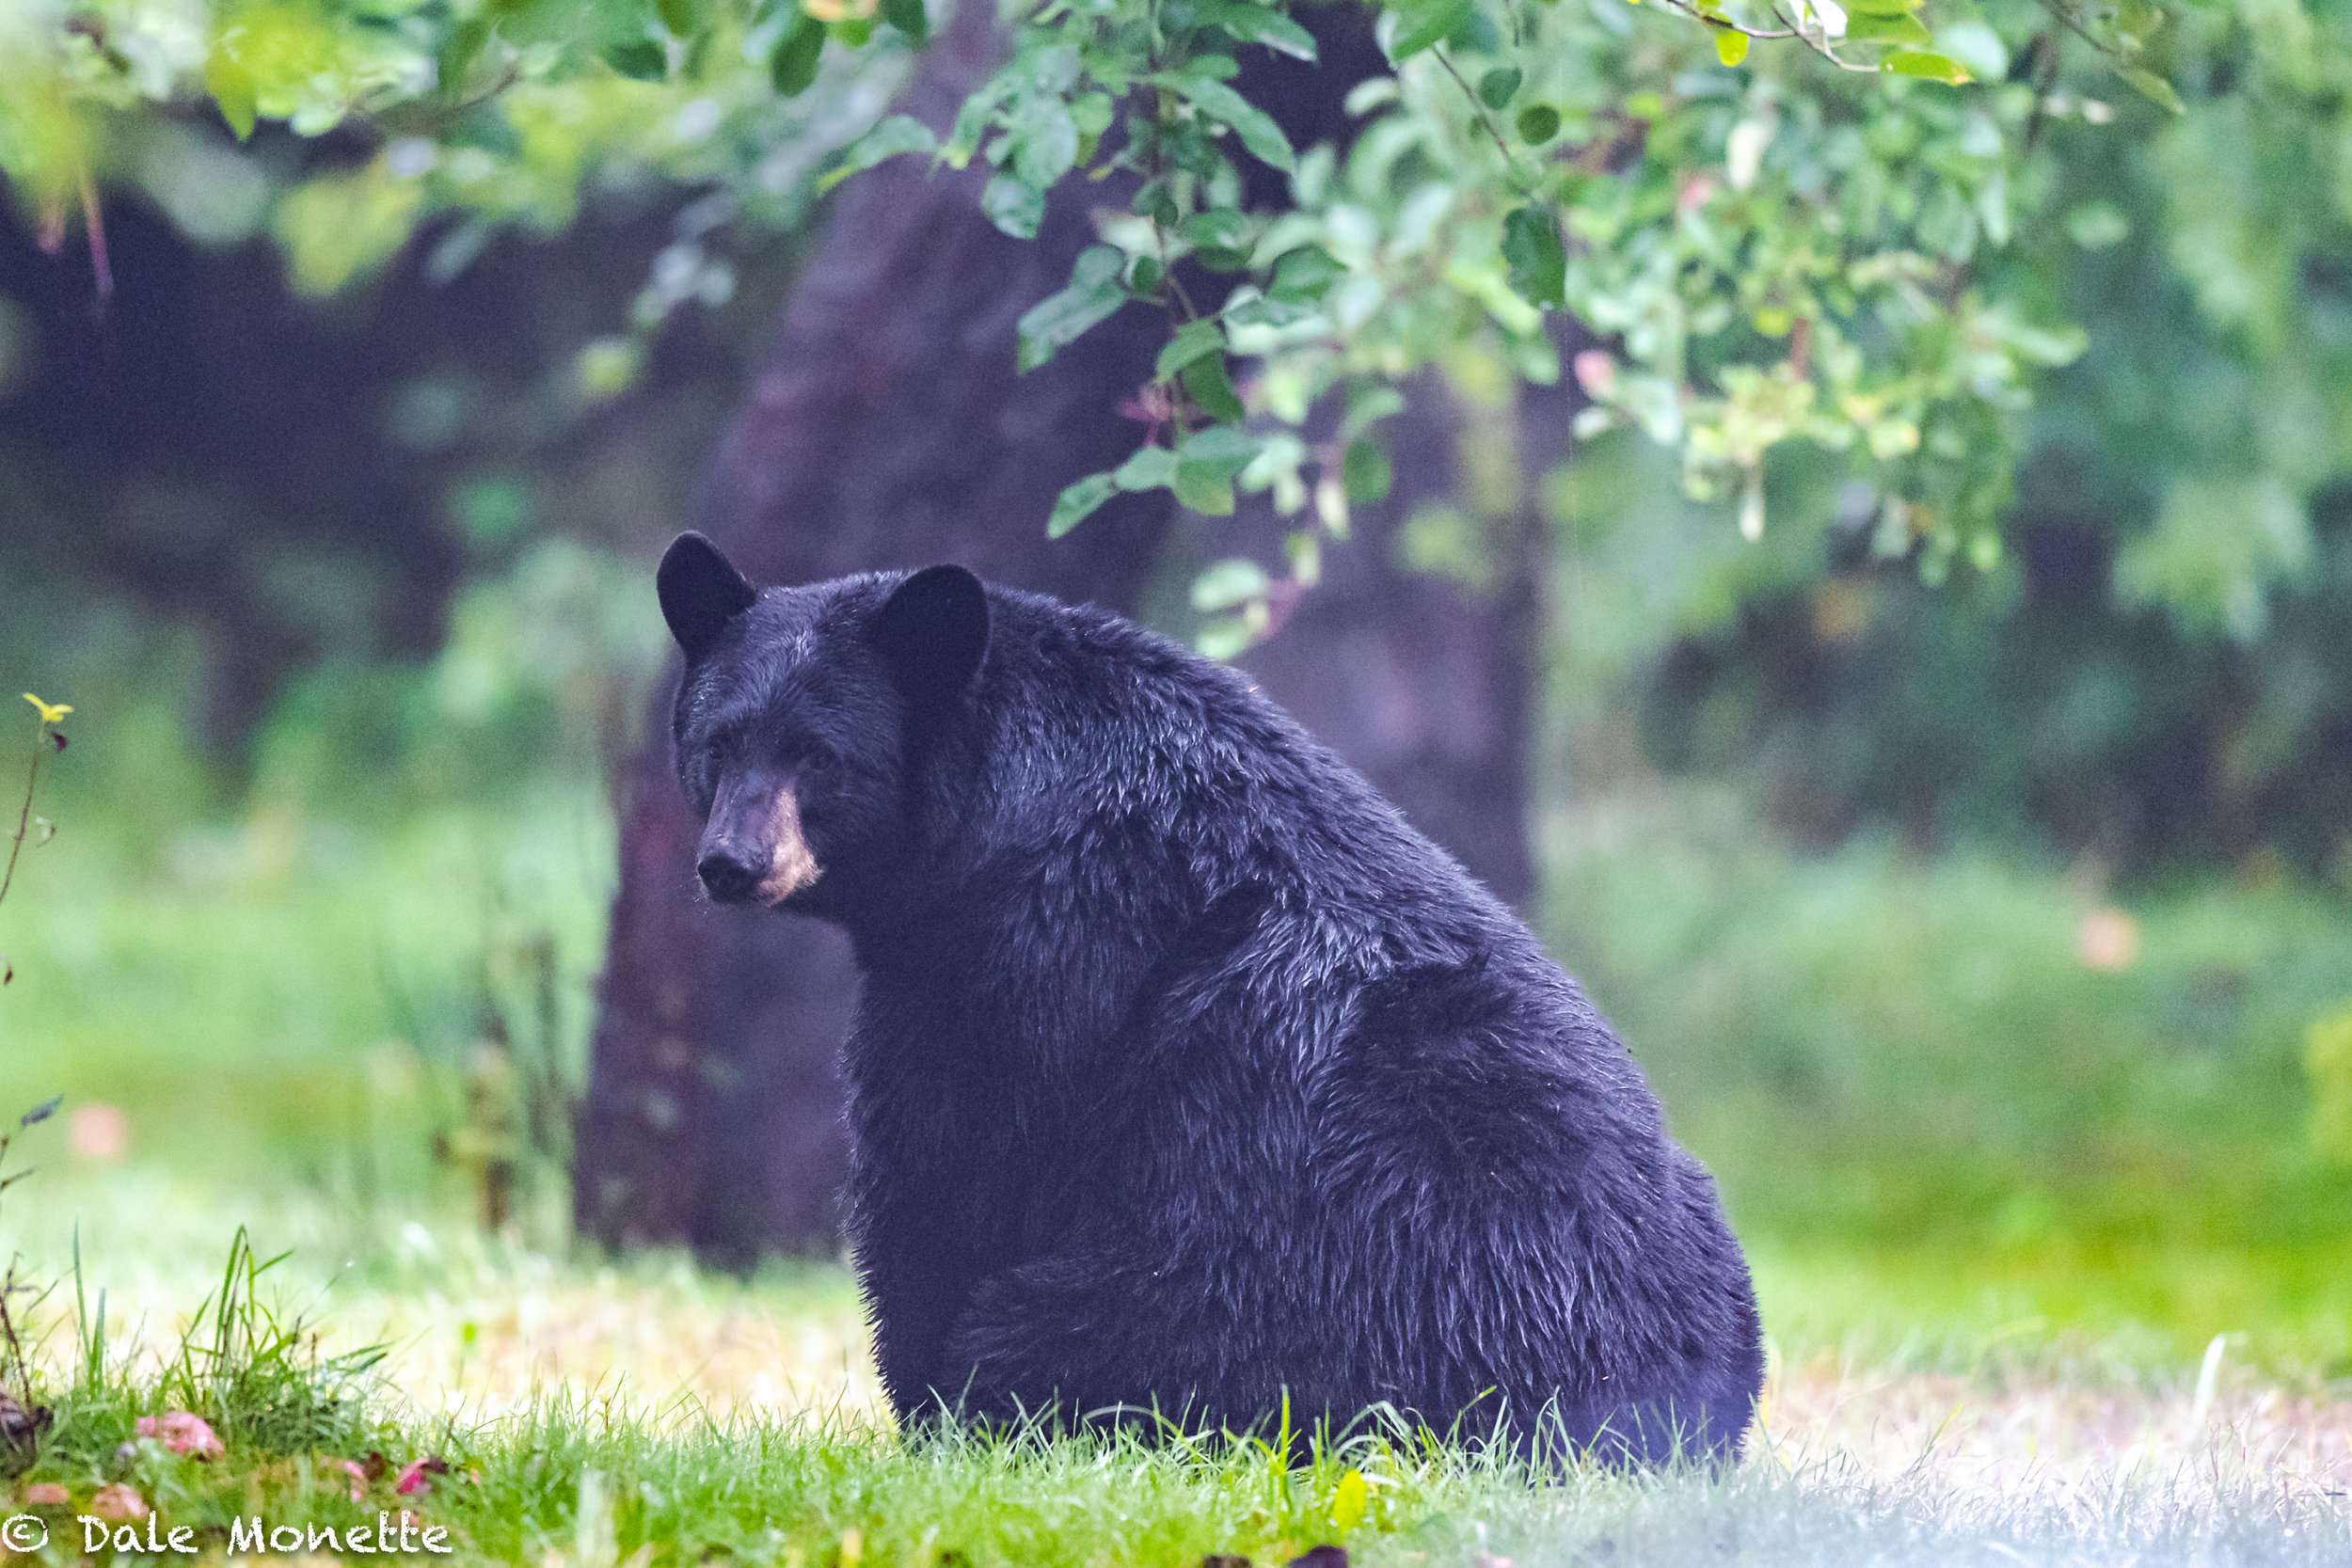 A wet, soggy, hungry black bear walked out in front of where I was setting in the woods on the edge of a big field getting soaked.  I've seen him a few times and nothing seems to excite him, the look he gave me when he discovered I was behind him says it all.